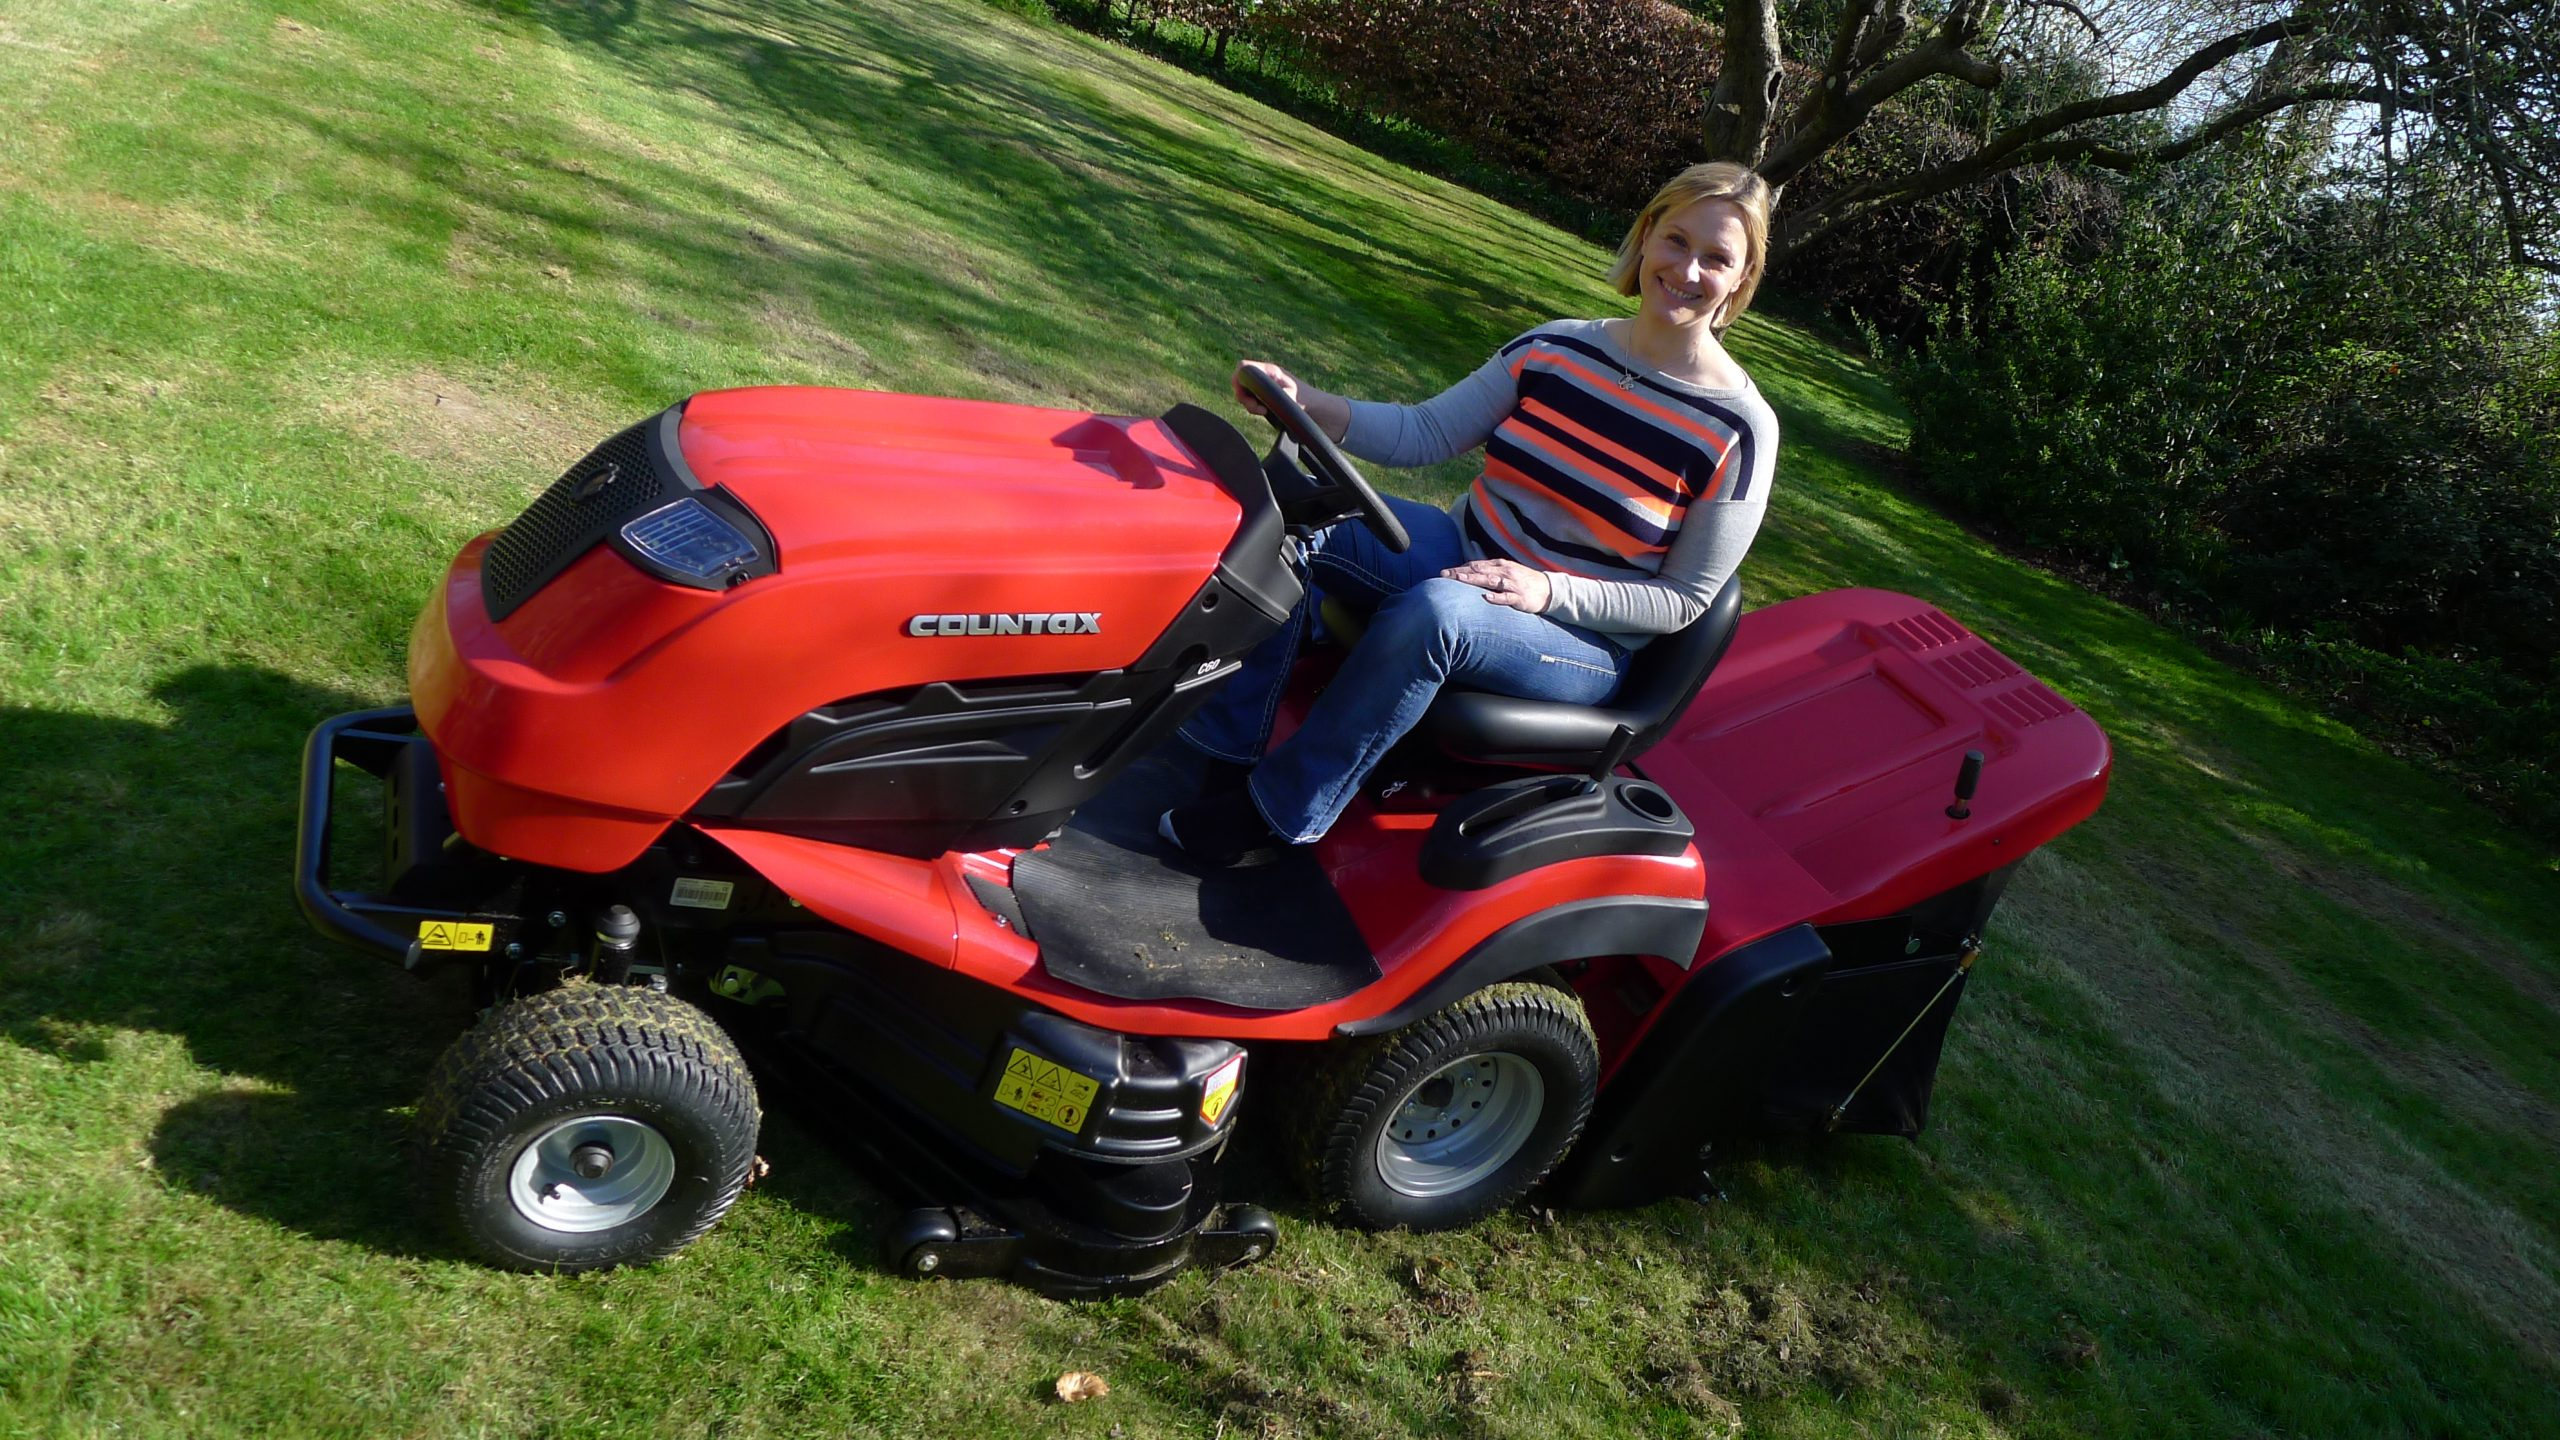 Countax lawn garden tractor riding mower